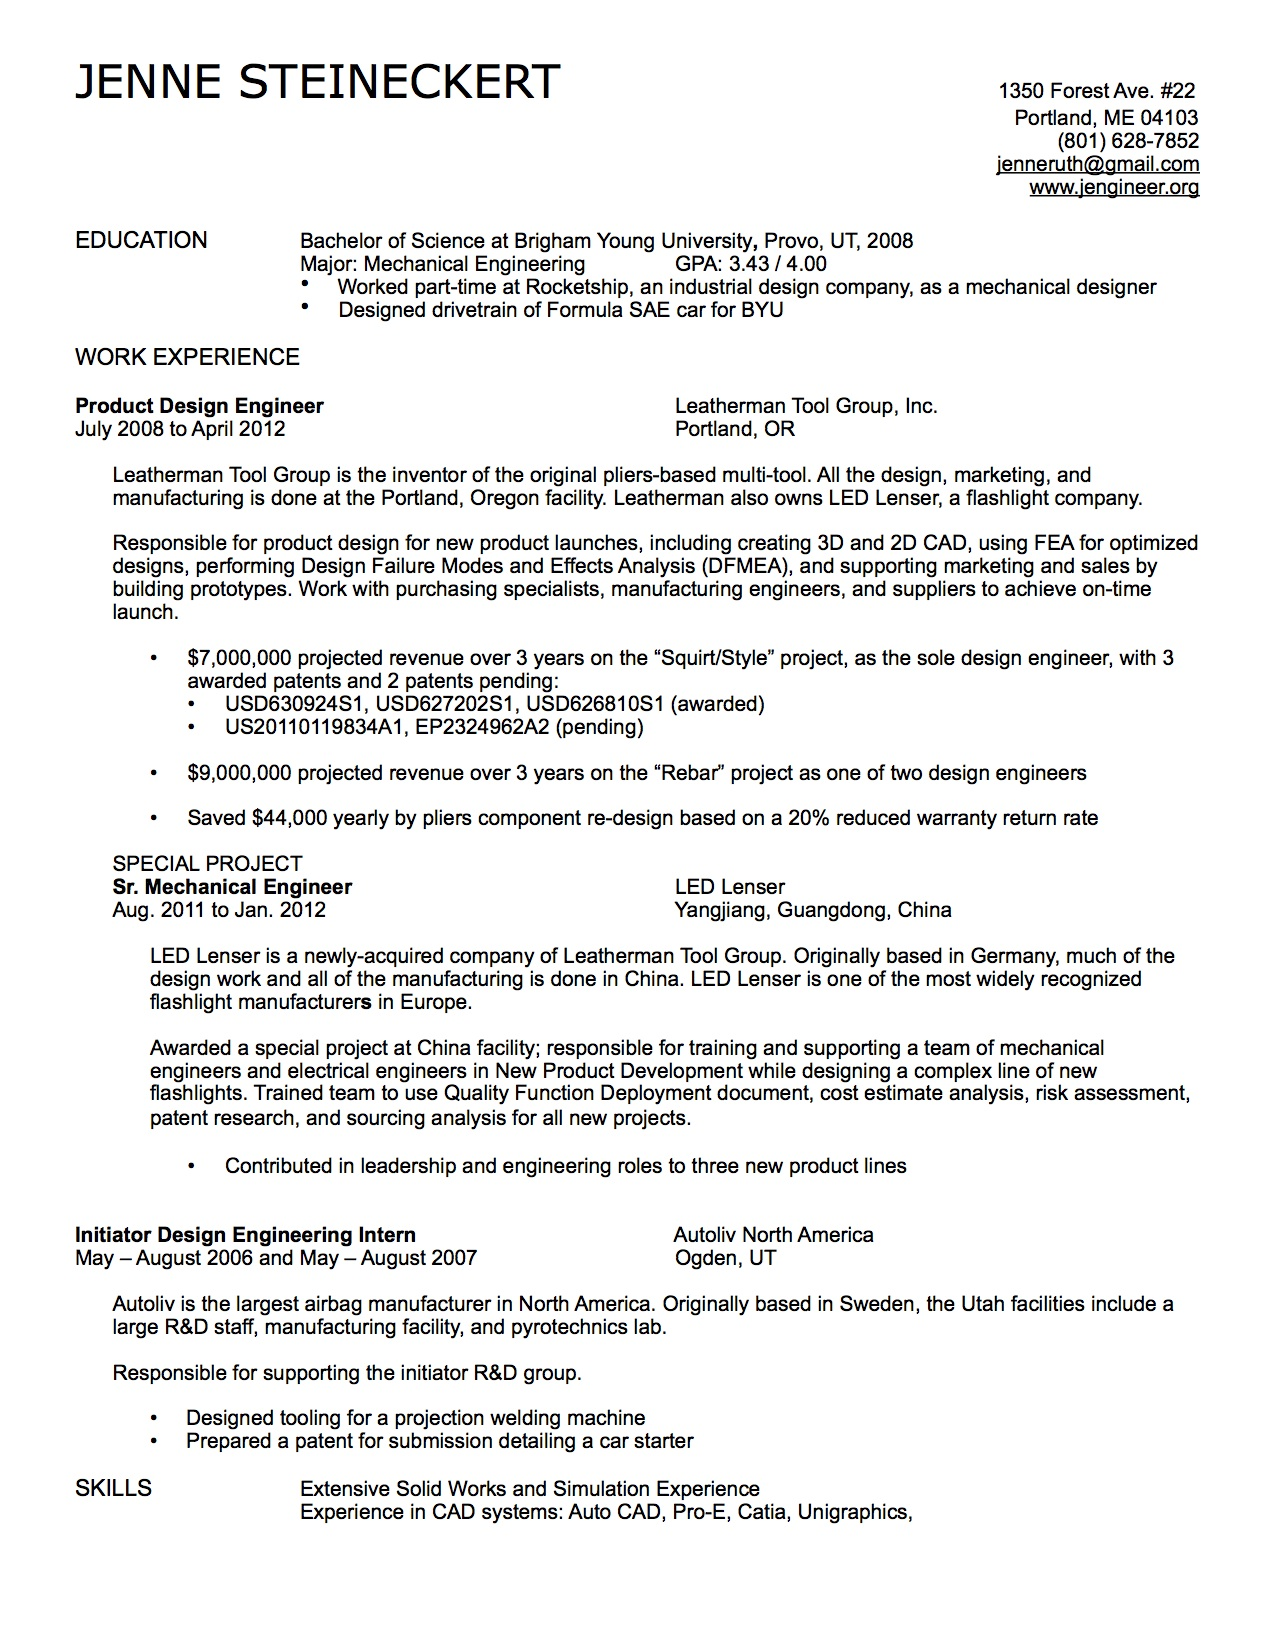 Resume Interests 28 Images Curriculum Vitae Curriculum Vitae